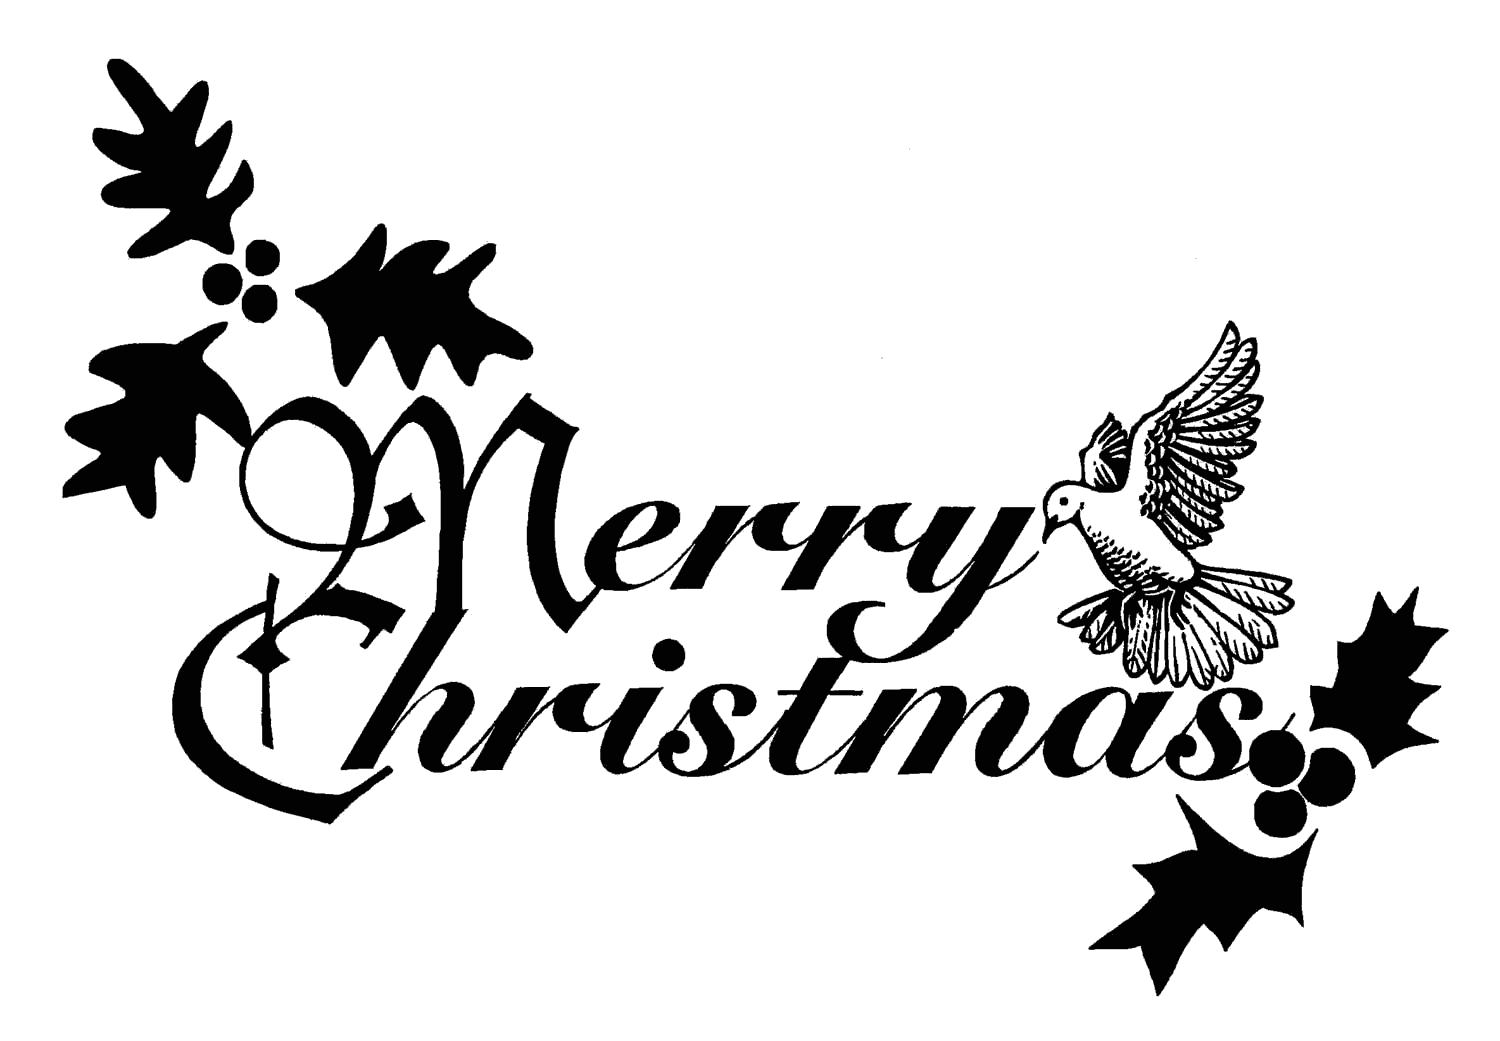 Merry Christmas Clip Art 2 Christmas Clipart Free Christmas Clipart Holiday Images